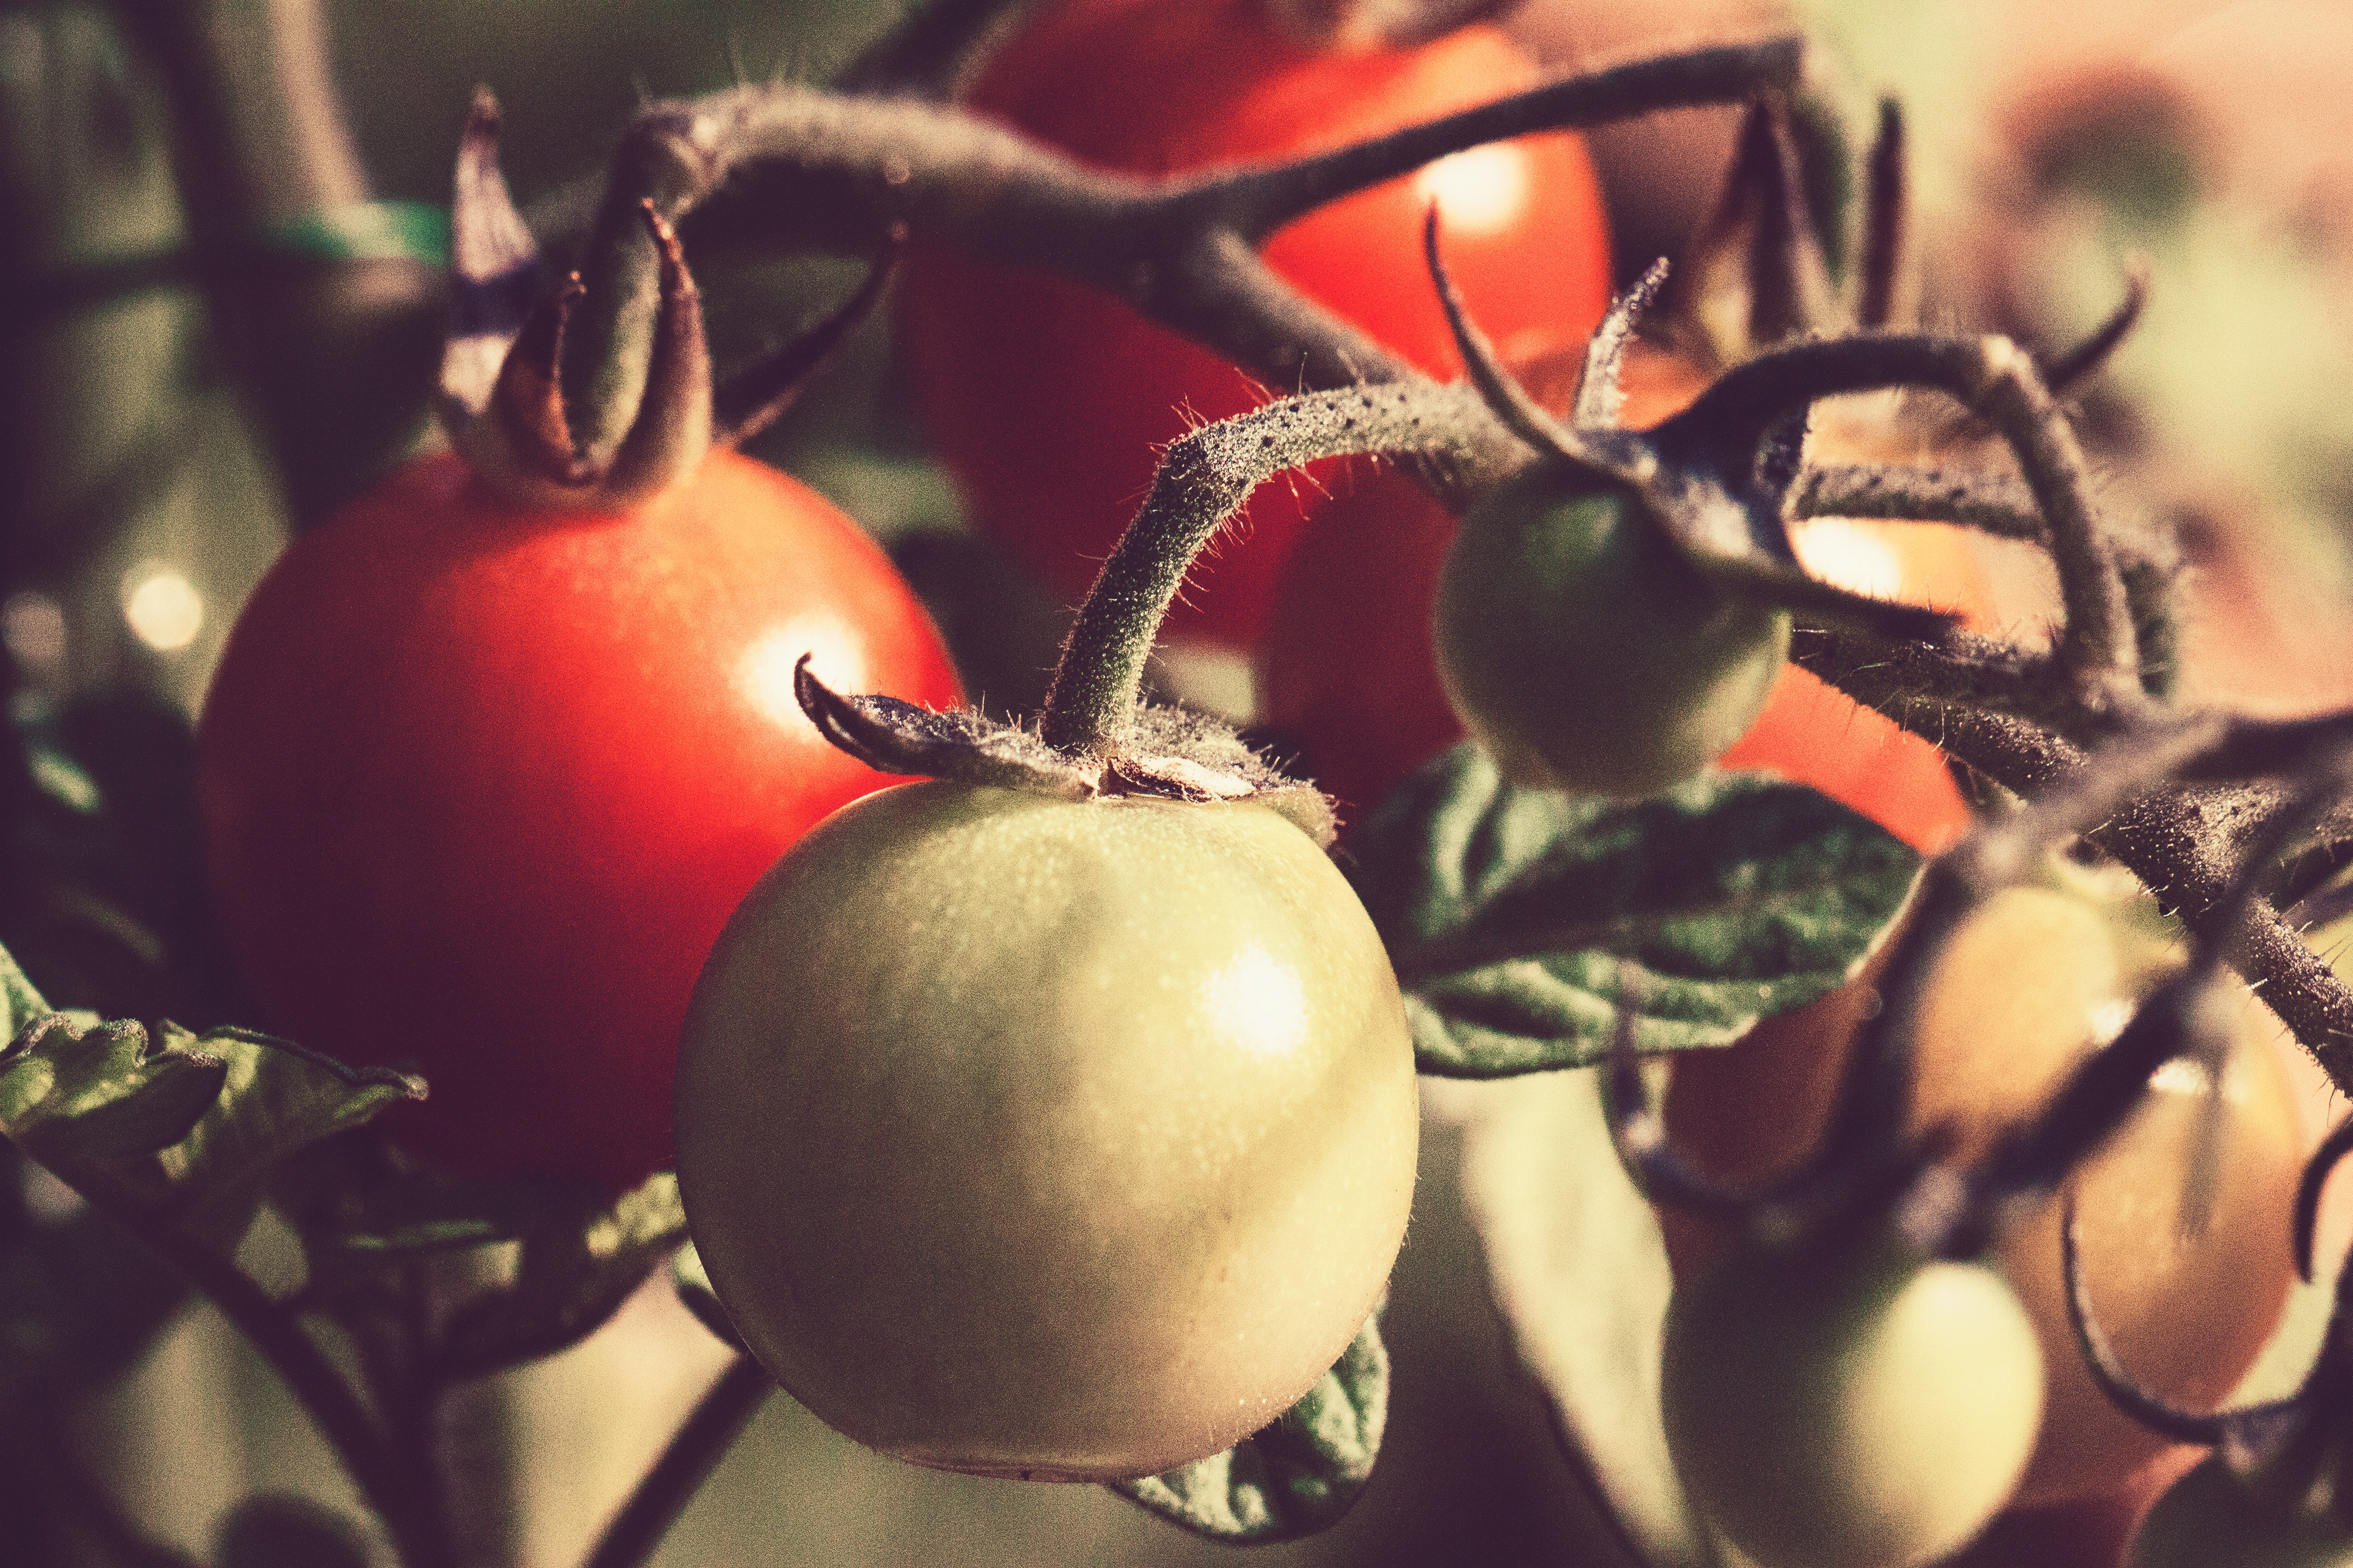 red and green tomatoes on the vine